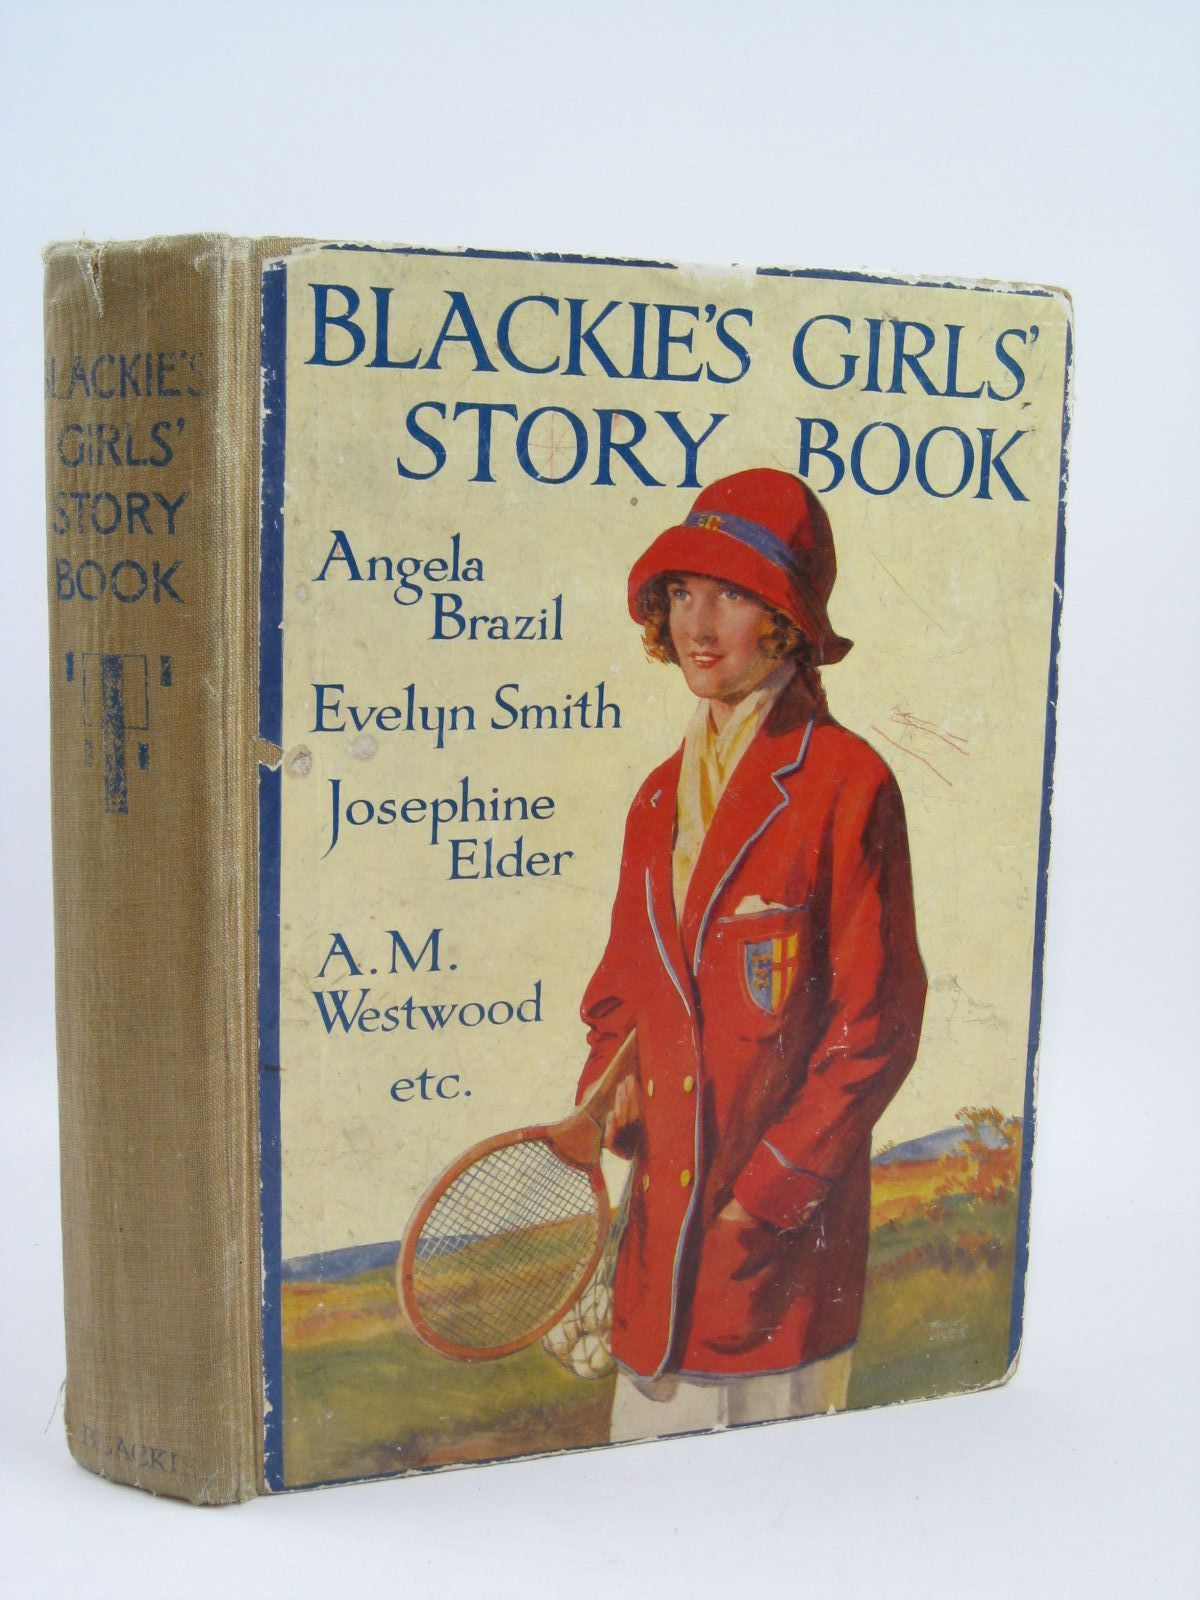 Photo of BLACKIE'S GIRLS' STORY BOOK written by Brazil, Angela Elder, Josephine Pocock, Doris Moore, Dorothea et al,  illustrated by Brock, H.M. Brock, C.E. Hickling, P.B. et al., published by Blackie & Son Ltd. (STOCK CODE: 1406409)  for sale by Stella & Rose's Books